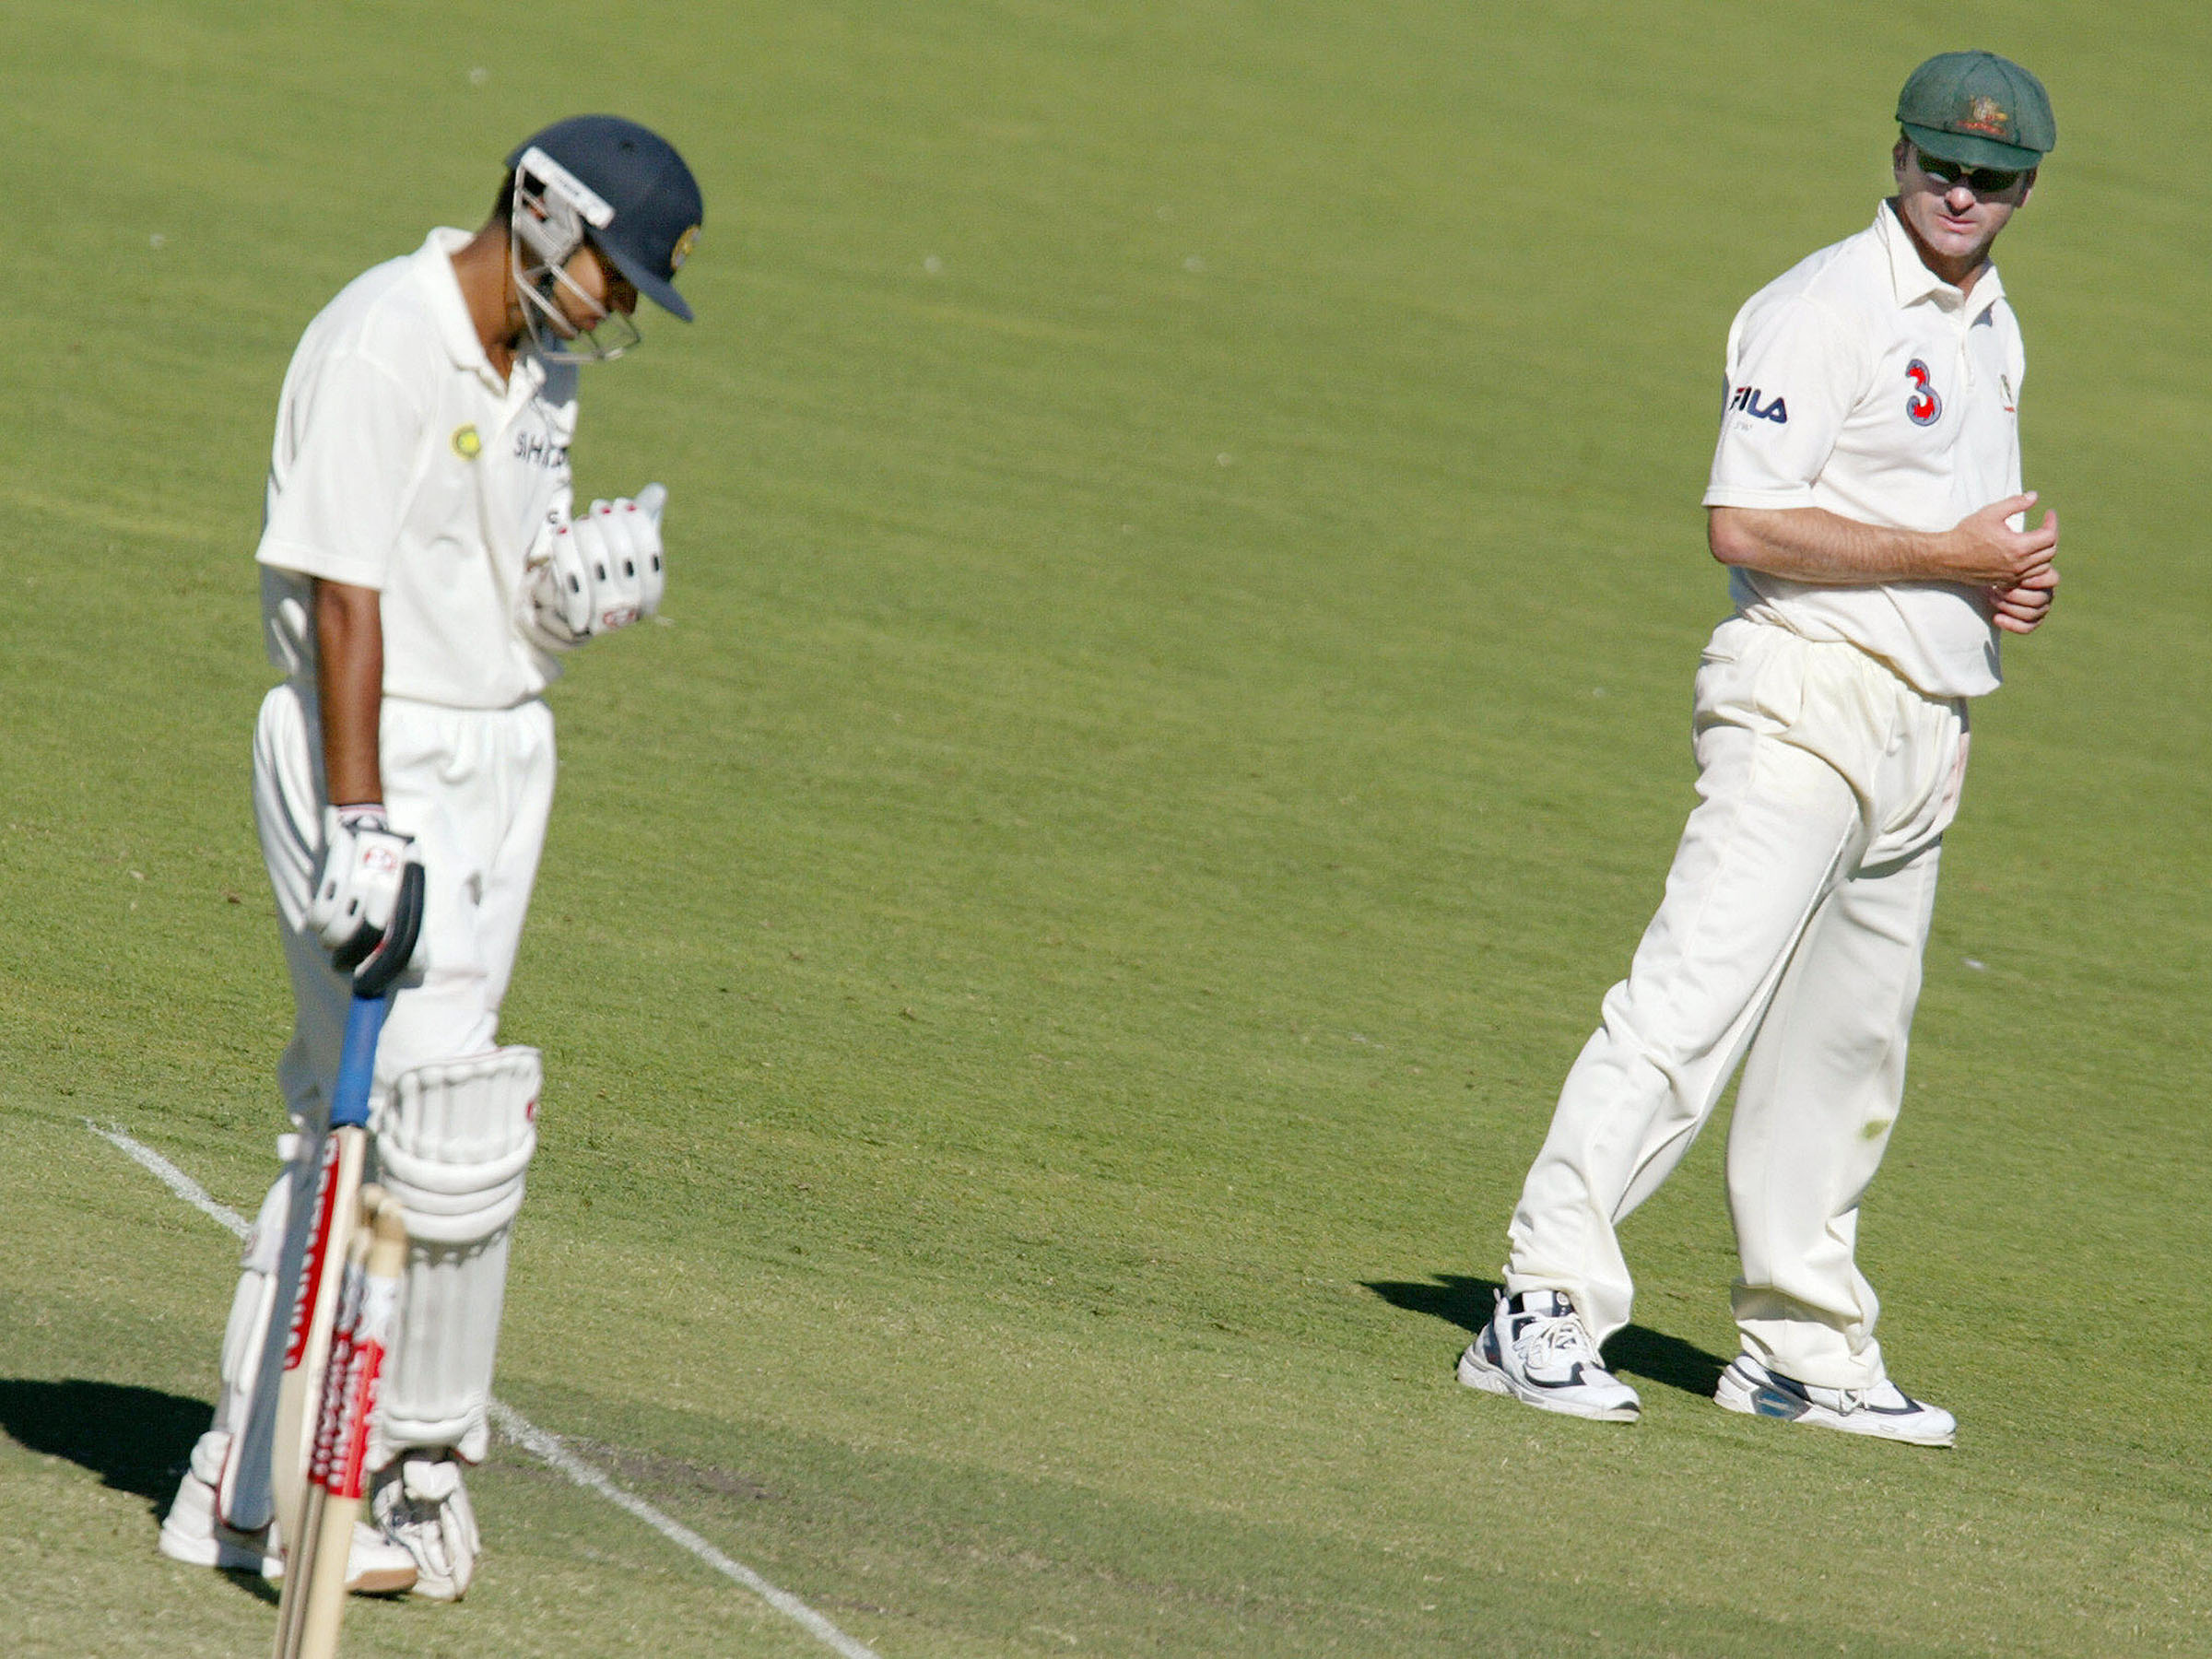 Dravid defied Australia - and Waugh - across two innings in Adelaide // Getty